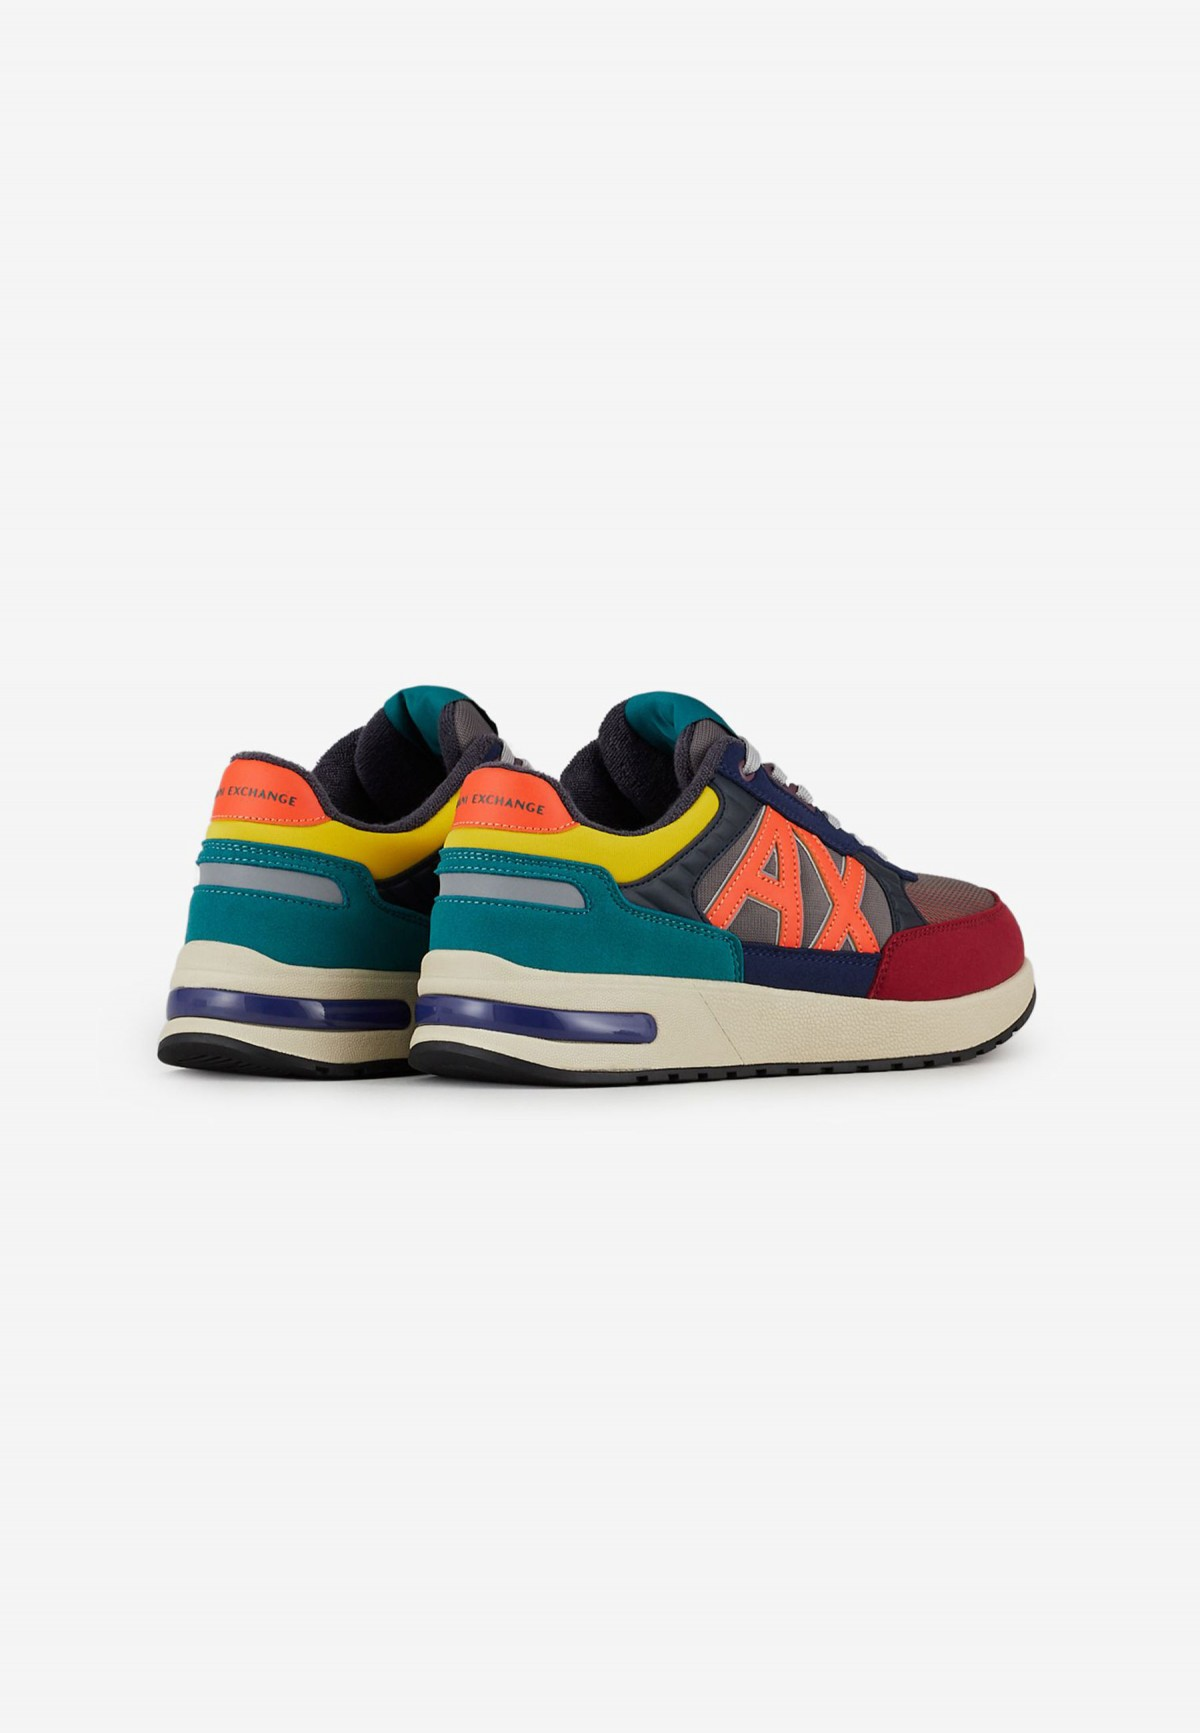 ZAPATILLAS ARMANI EXCHANGE MULTICOLOR